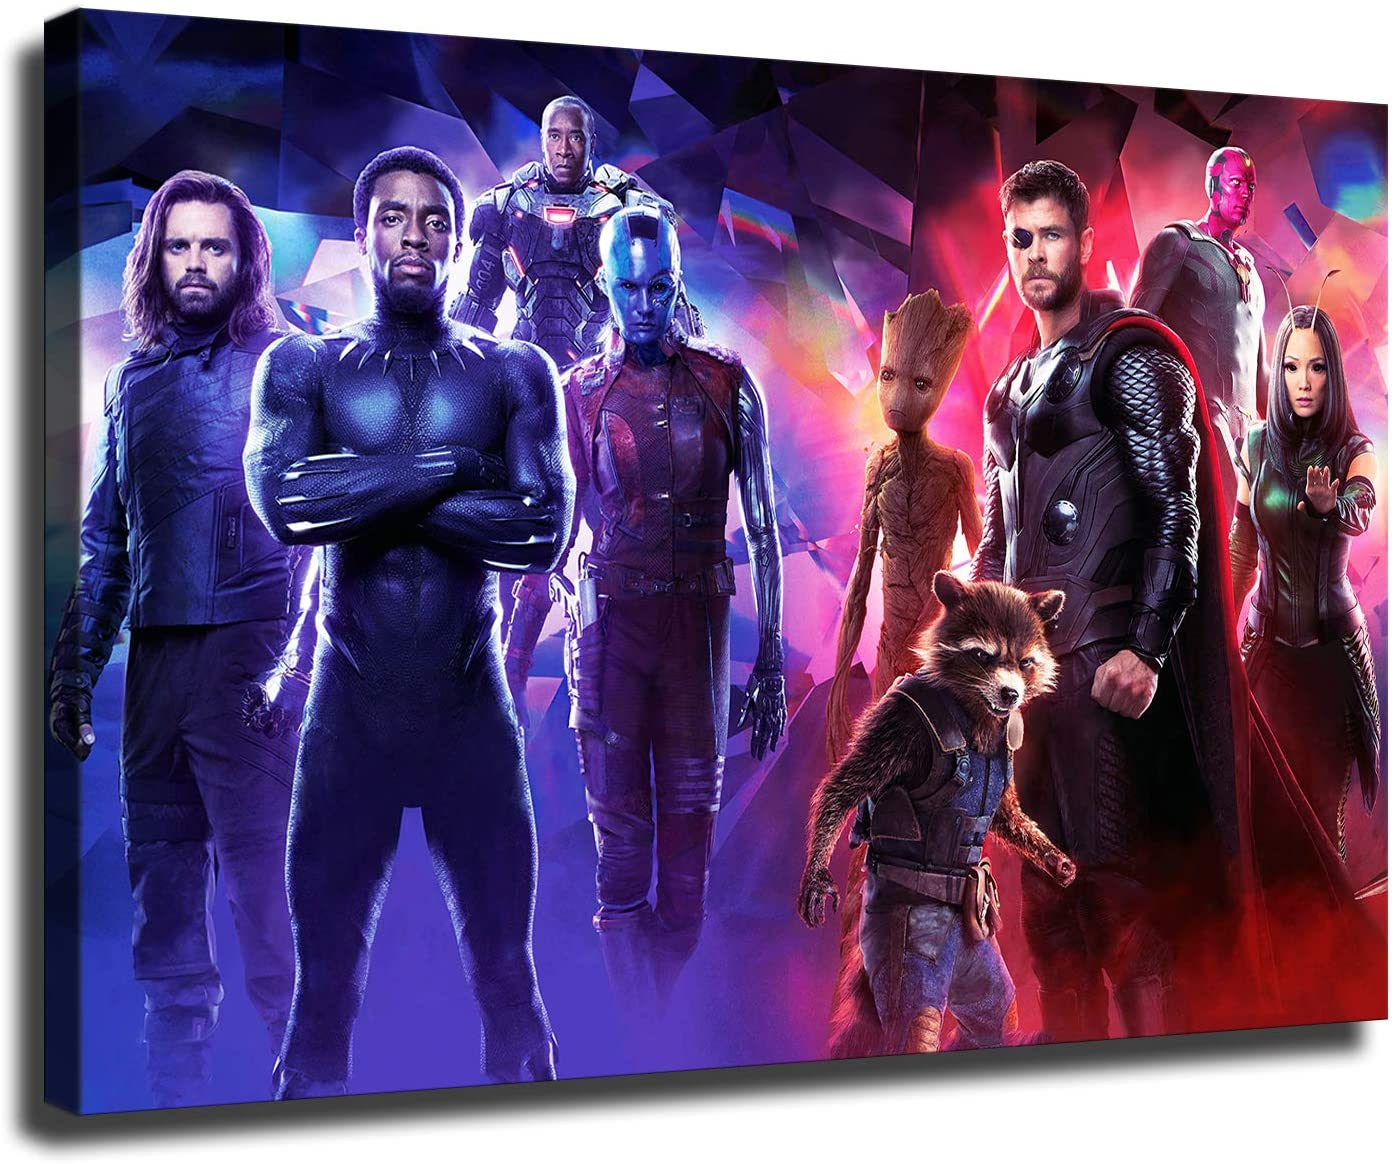 Chadwick Boseman Poster Black Panther with Other Superheroes Wall Decor Art HD Collections Canvas Painting (8x12inch,No Framed)